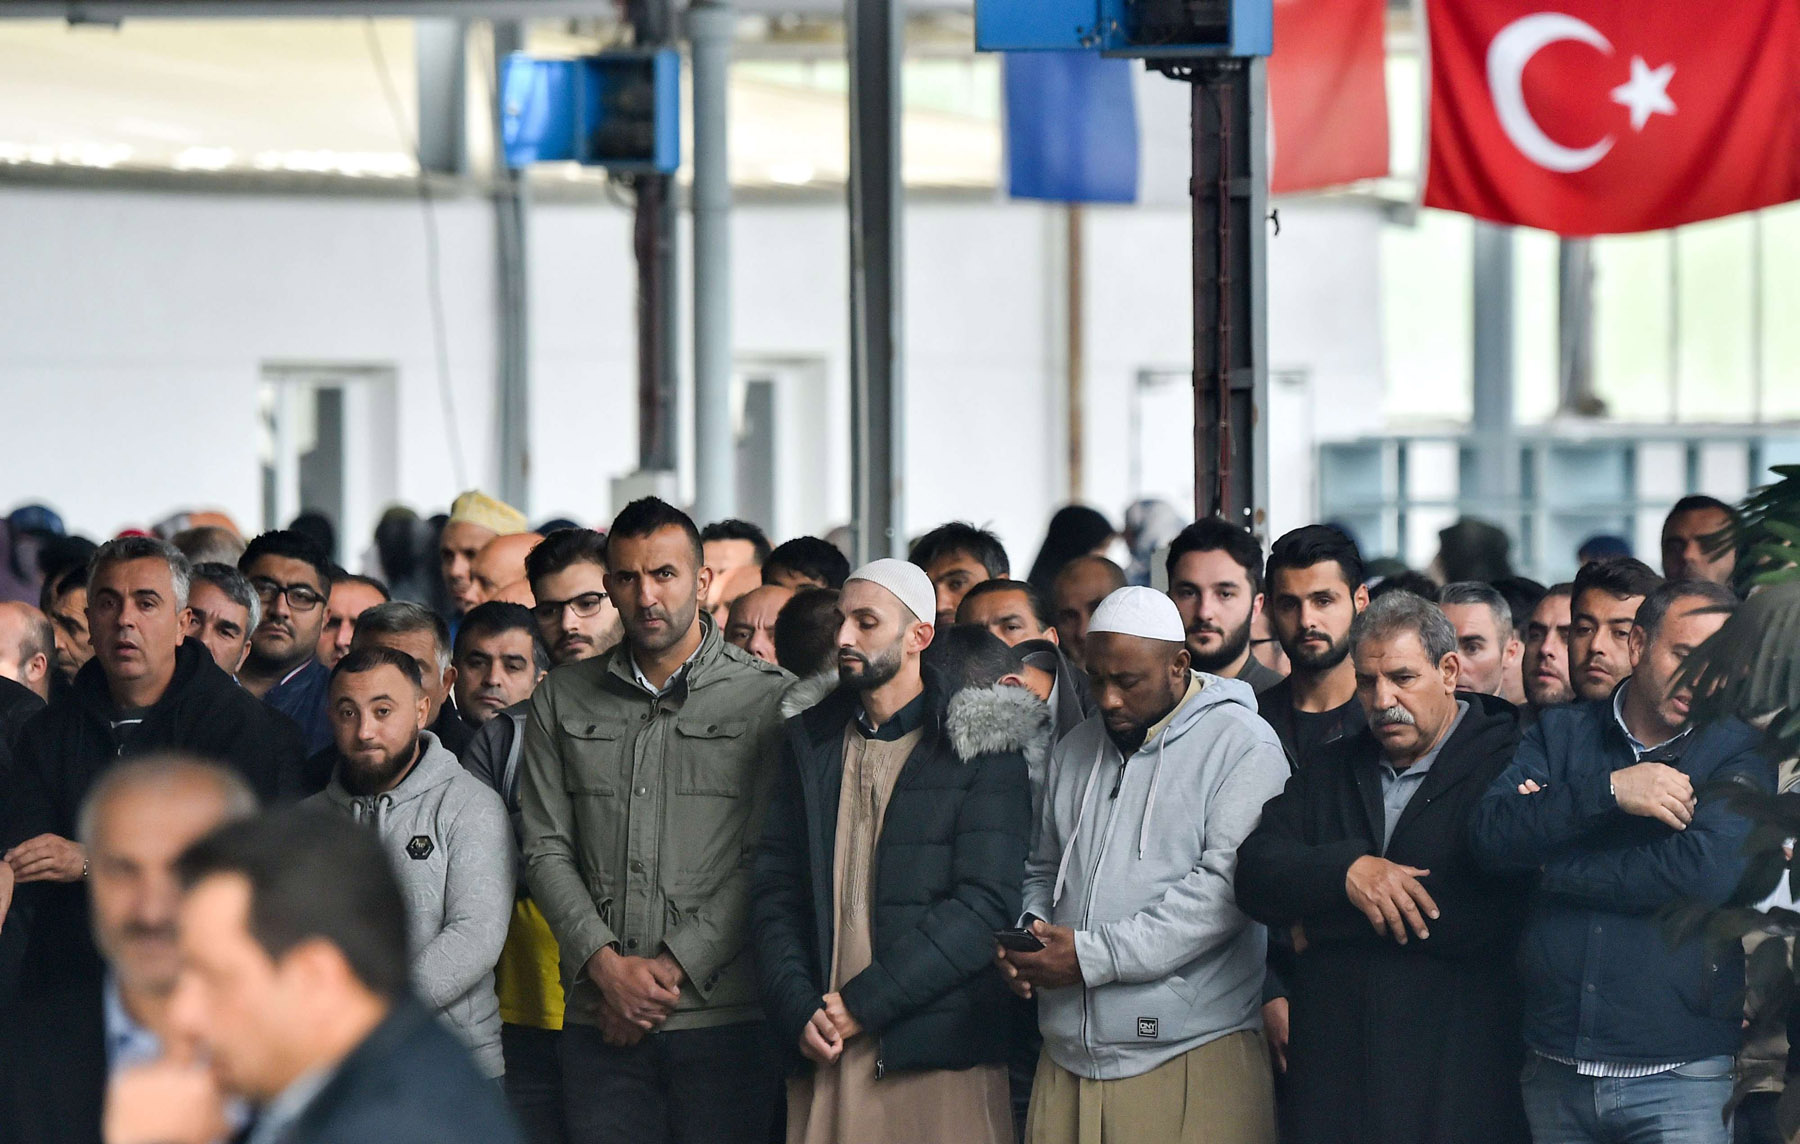 Turkish Muslims pray during a funeral ceremony in Lorient, western France. (AFP)